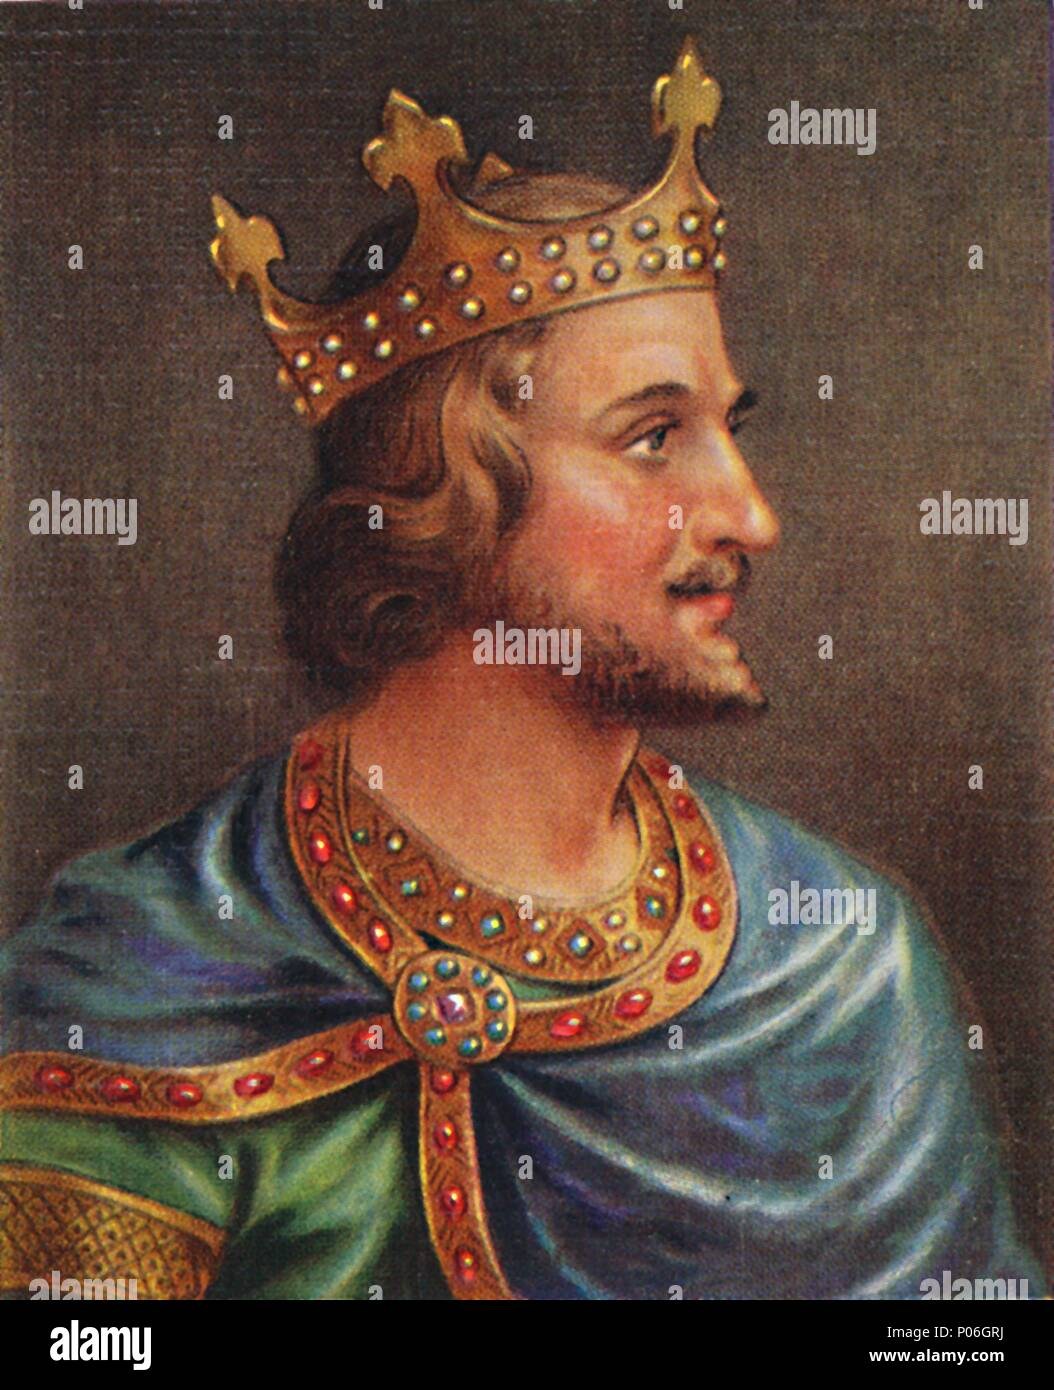 'Stephen', 1935. King Stephen (1096-1154). Stephen was king of England from 1135 until his death in 1154. From Kings & Queens of England - A Serie - Stock Image